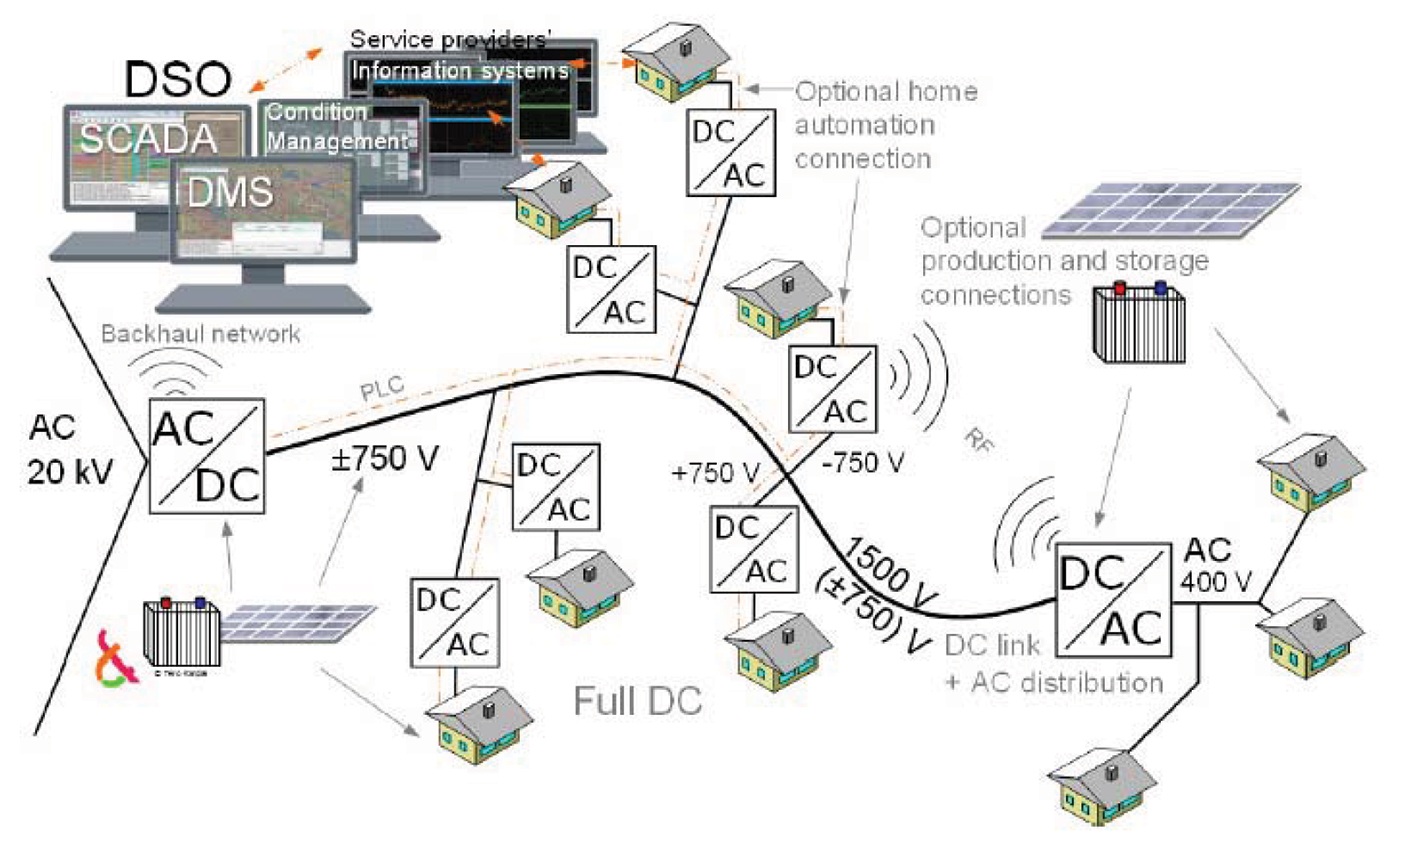 Medium And Low Voltage Dc Networks An Emerging Alternative To Ac Converter Public Circuit Using Bridge Fig 7 Model Of A Lvdc Distribution Network 6